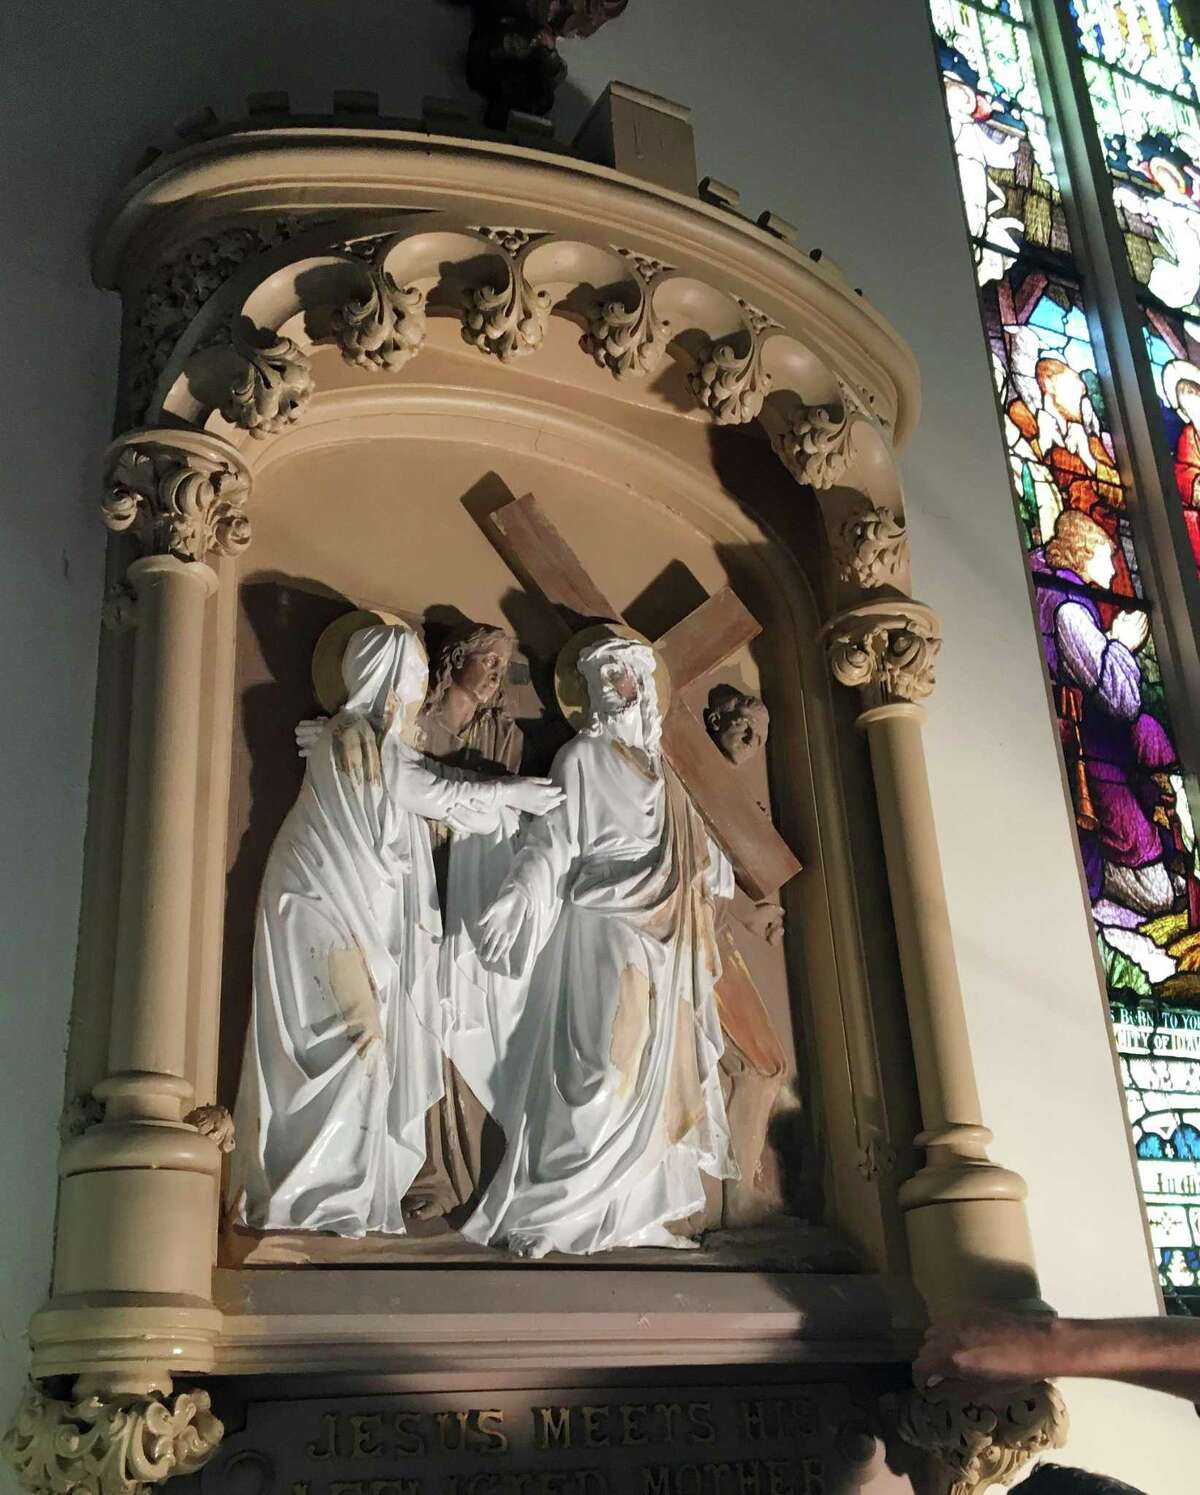 The Fourth Station, Jesus meets his mother, before the restoration. The 14 Stations of the Cross on the walls of the Church of Assumption in Ansonia, Conn. have been meticulously restored to their original luster.